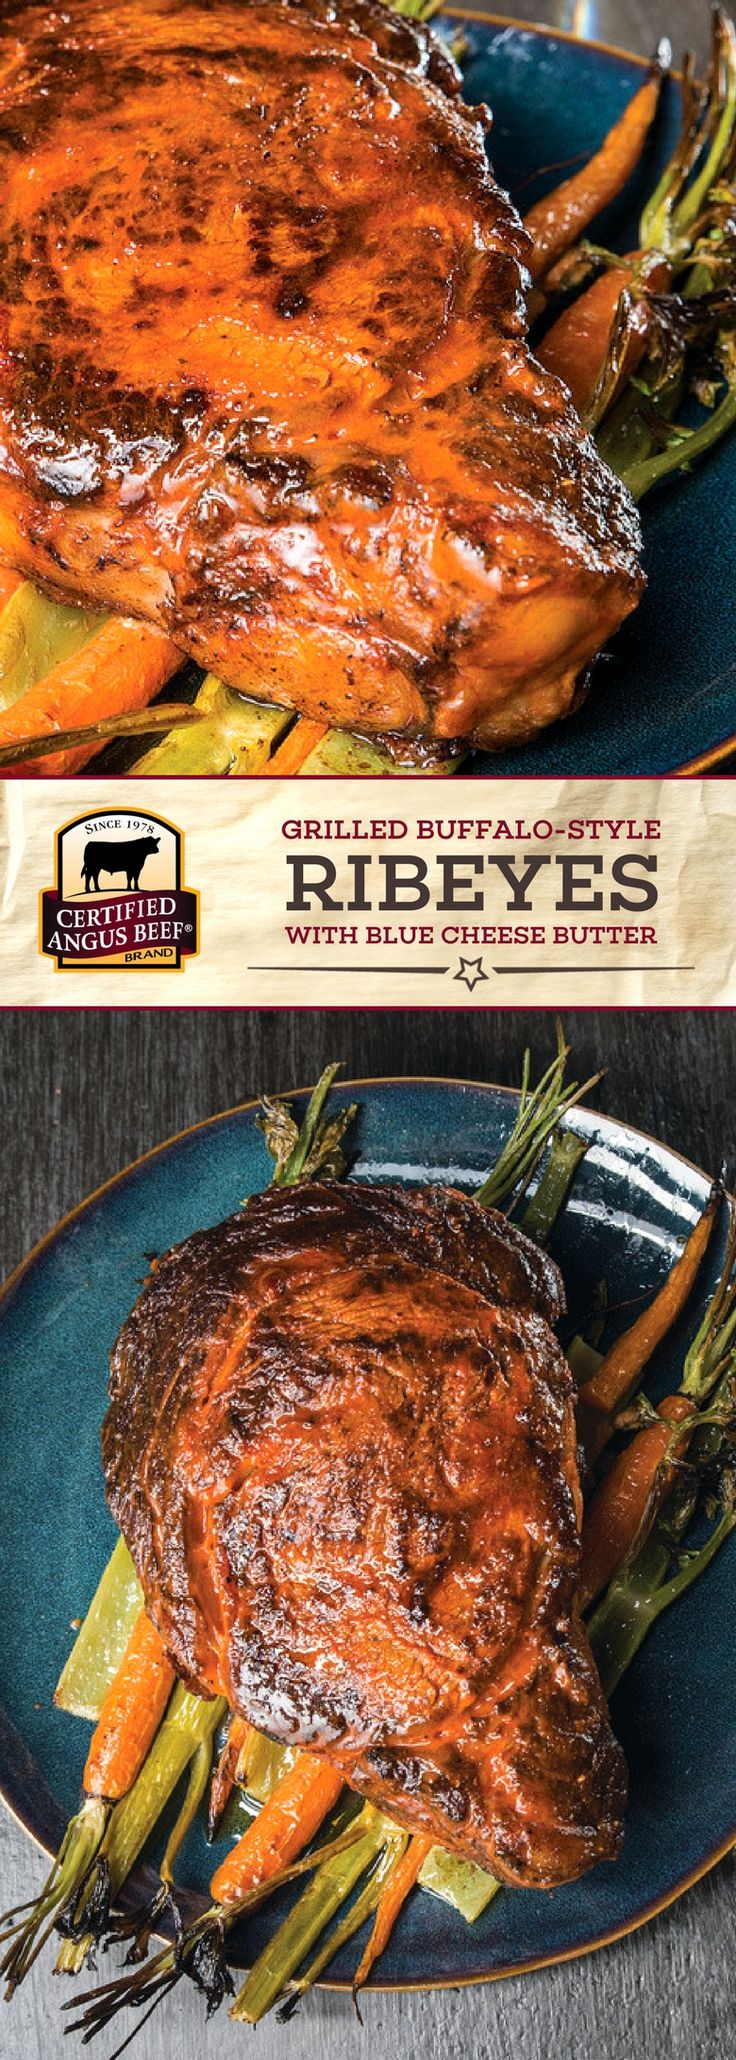 Certified Angus Beef®️ brand Grilled Buffalo-style Ribeyes with Blue Cheese Butter is a mouth-watering beef recipe that uses the BEST ribeye steaks and a tasty hot sauce marinade! The blue cheese butter really makes this dish pop with flavor!  #bestangusbeef #certifiedangusbeef #beefrecipe #steakrecipe